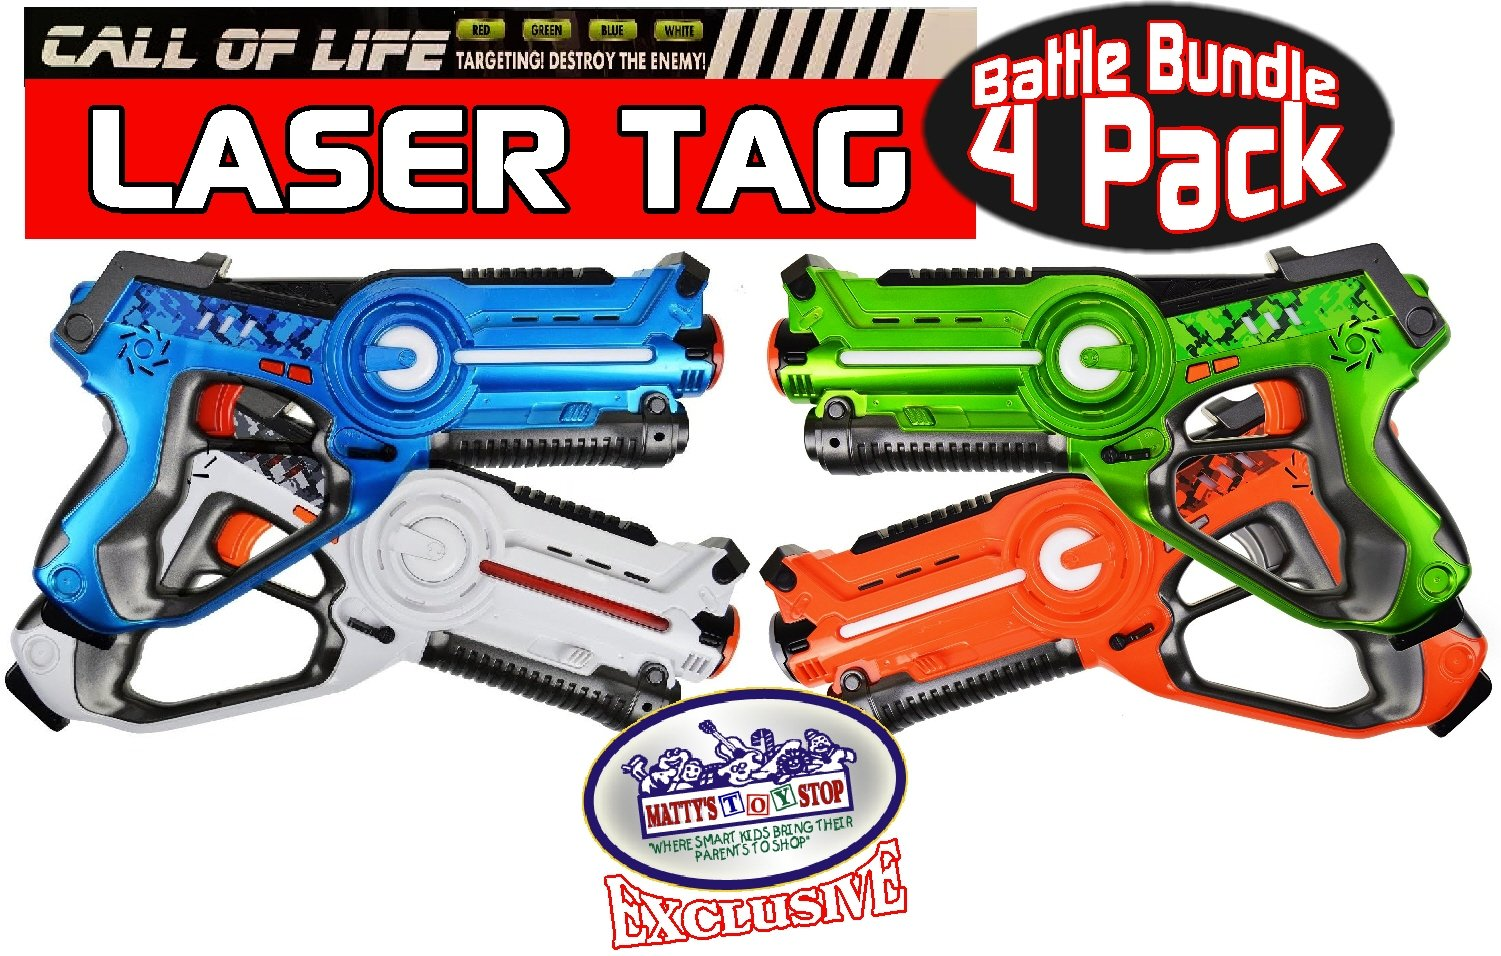 """Matty's Toy Stop """"Call of Life"""" Laser Tag Blasters for Kids Red, Green, Blue & White Gift Set Battle Bundle - 4 Pack"""